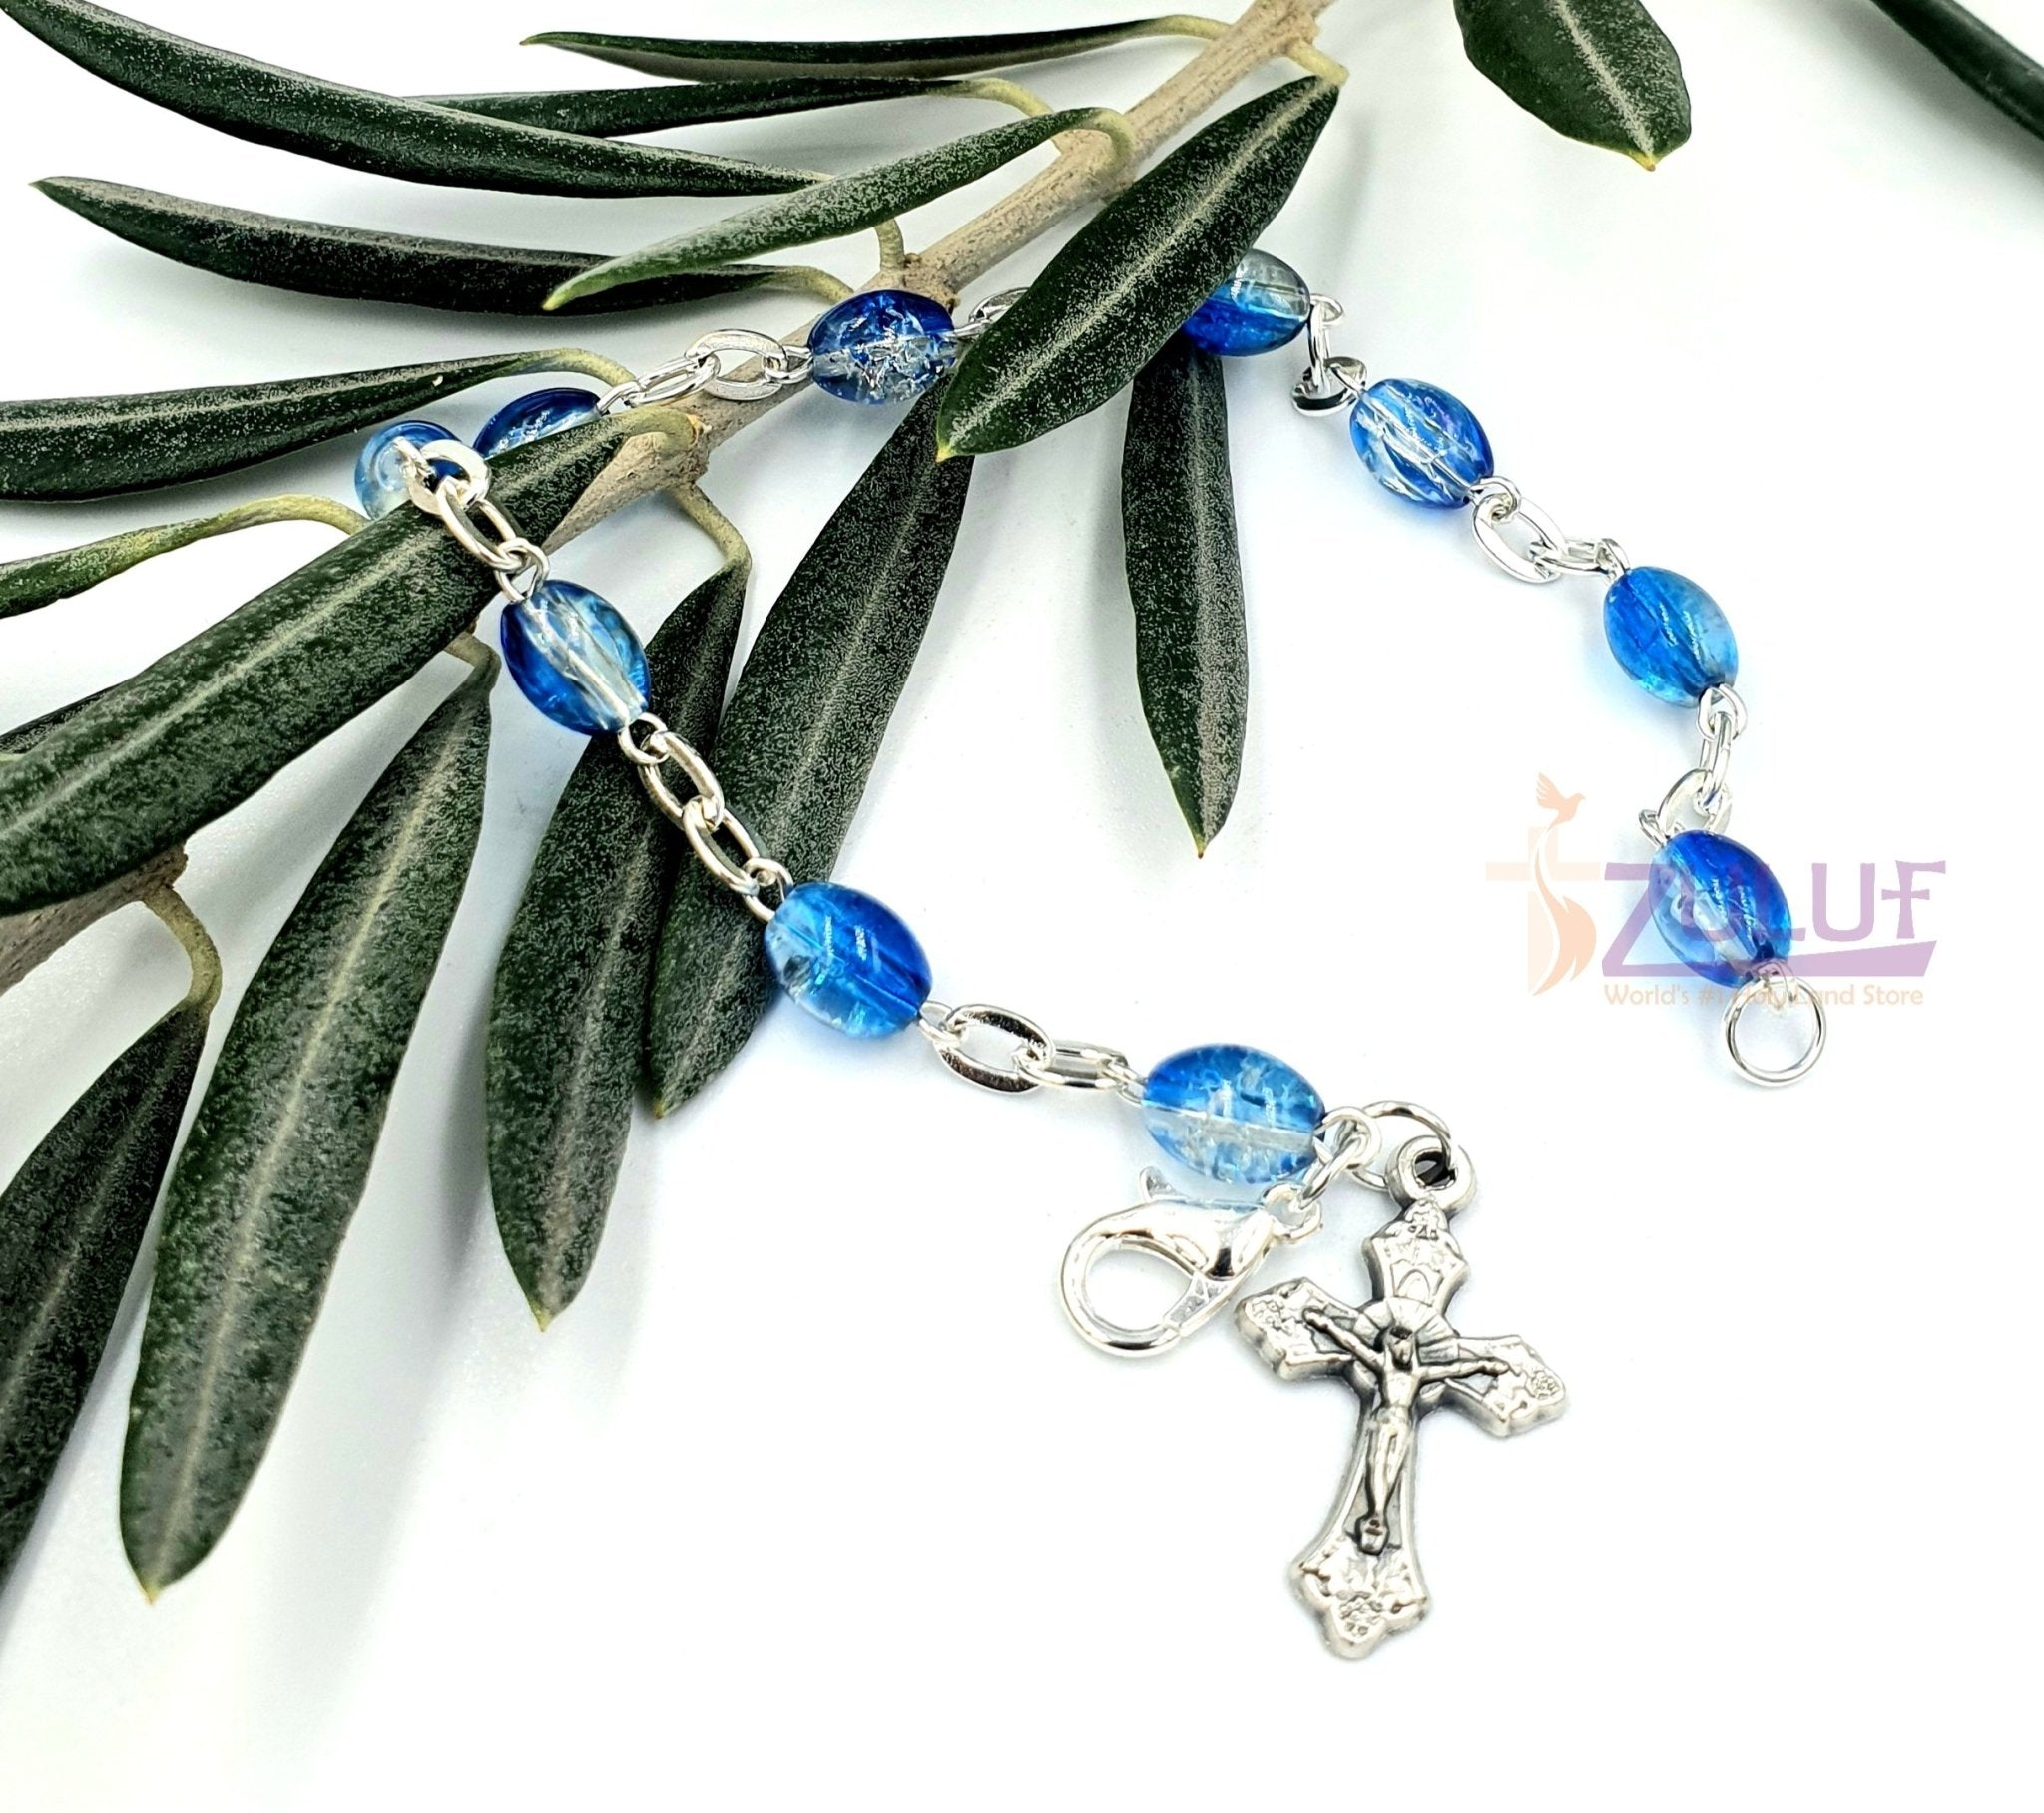 Blue Crystal Rosary Bracelet With Silver Chain and Crucifix - BRA023 - Zuluf